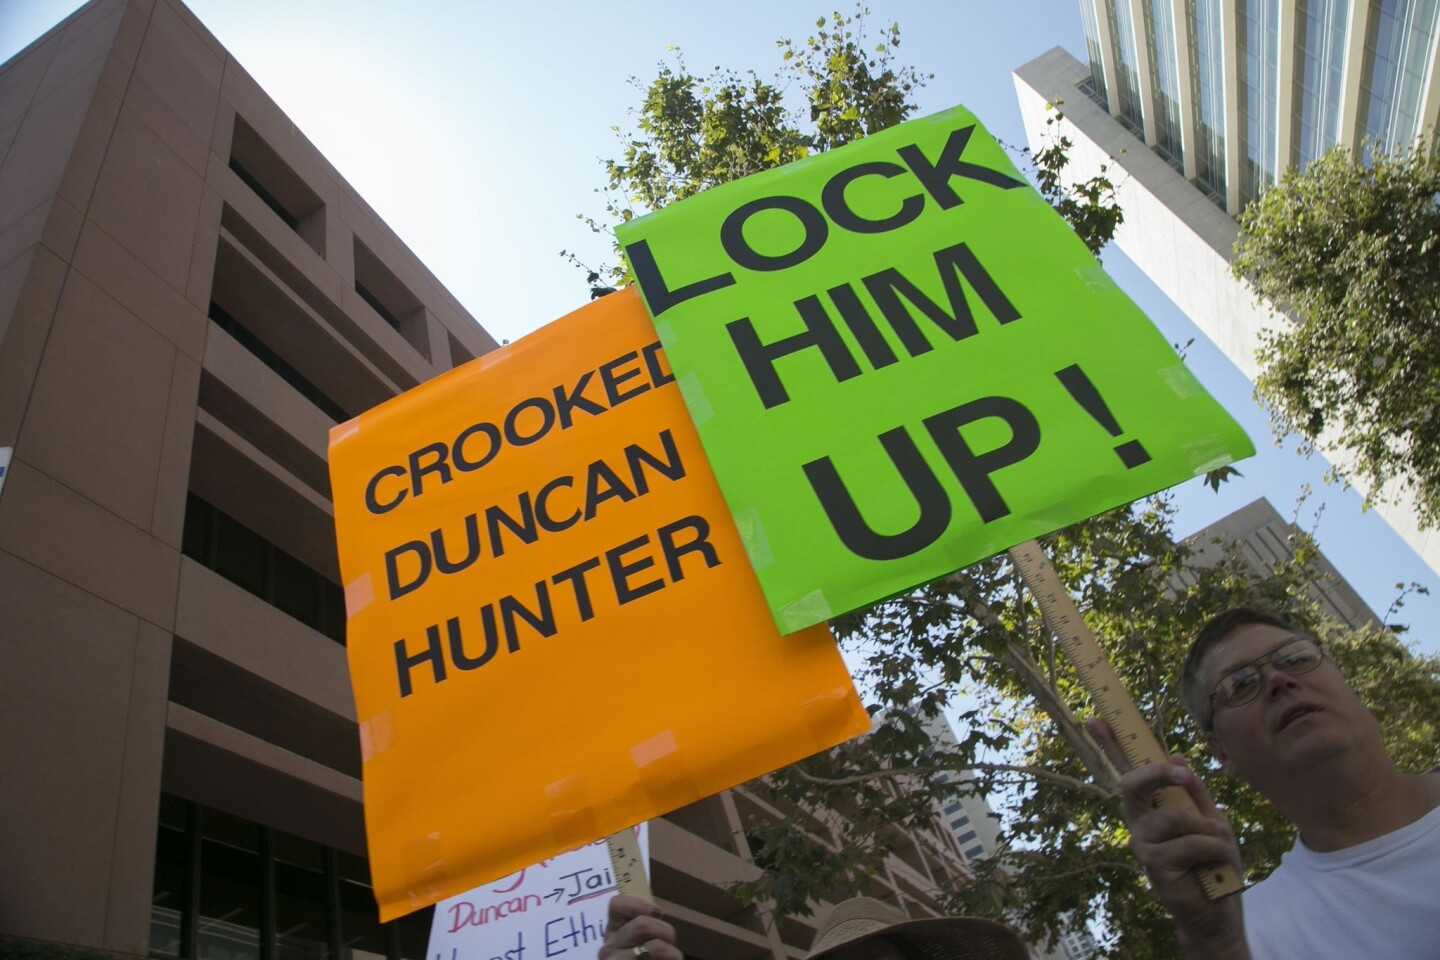 A protester who didn't want to give his name held a sign outside of the Federal Courthouse where 50th congressional district representative Duncan D. Hunter was arraigned in in San Diego on charges that he and his wife Margaret Hunter misused $250,000 in campaign contributions.